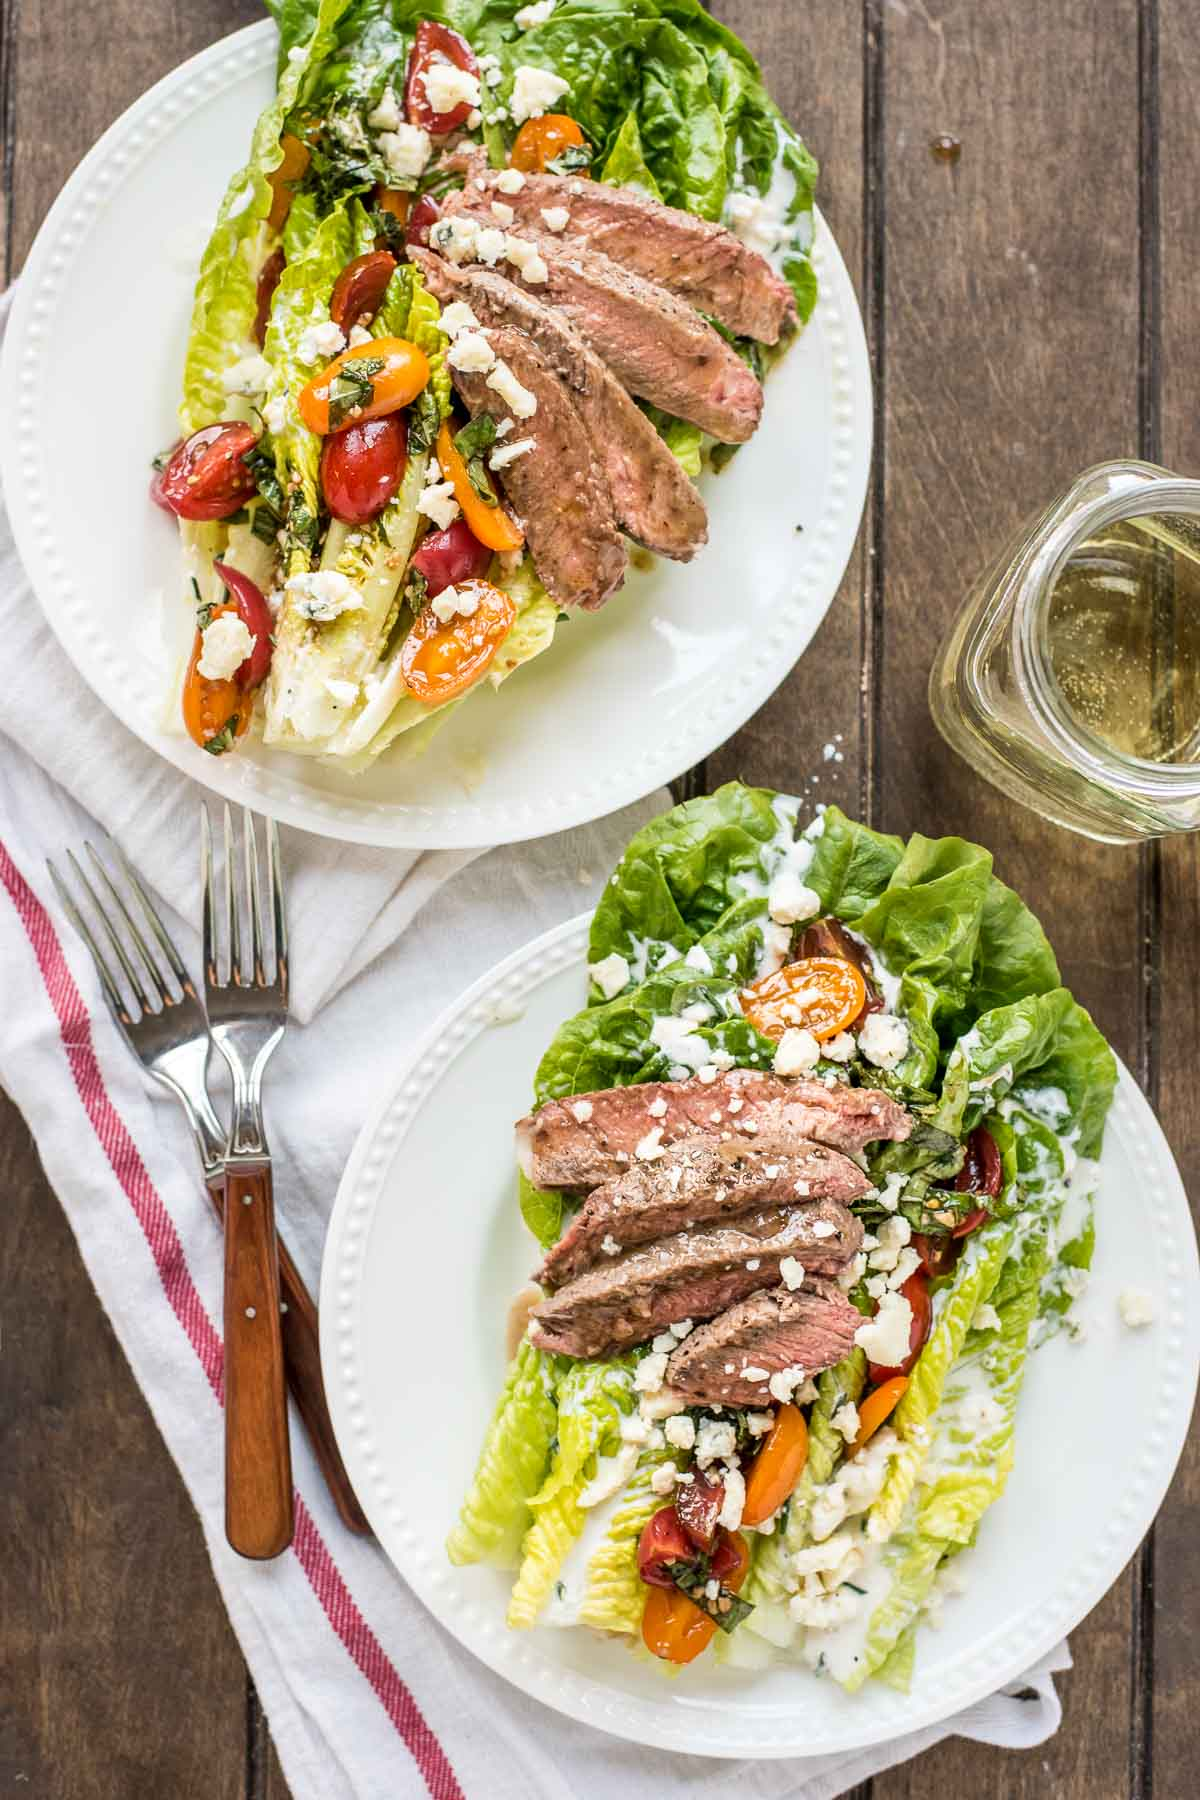 This salad loaded with bruschetta, homemade blue cheese dressing, and juicy steak is the perfect summer salad.